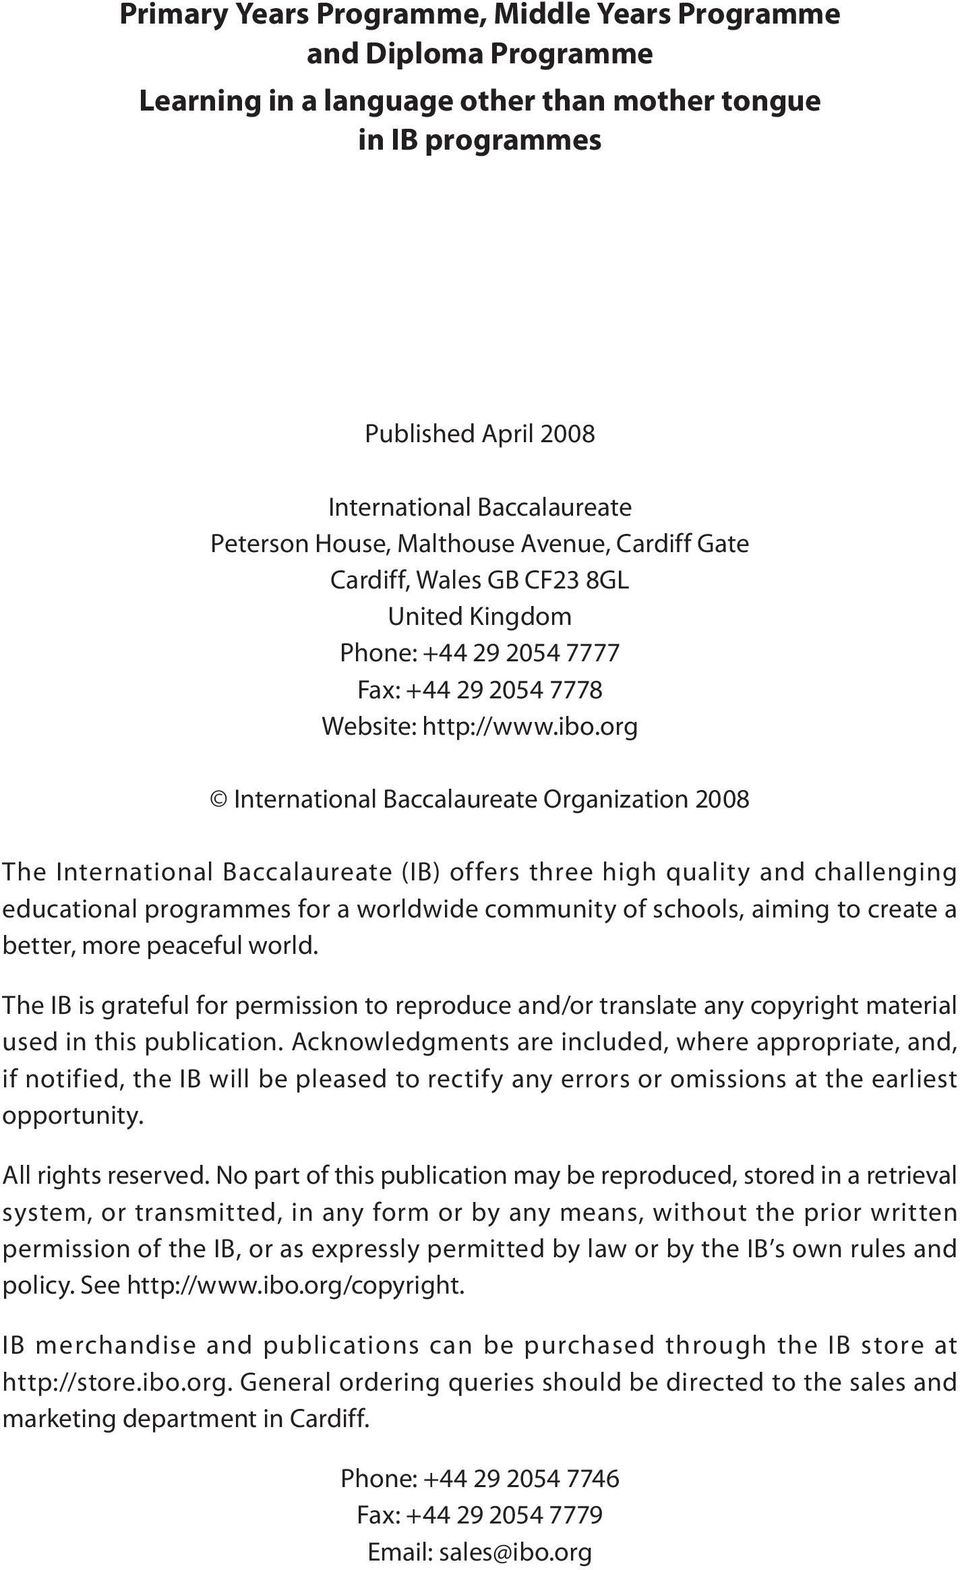 org International Baccalaureate Organization 2008 The International Baccalaureate (IB) offers three high quality and challenging educational programmes for a worldwide community of schools, aiming to